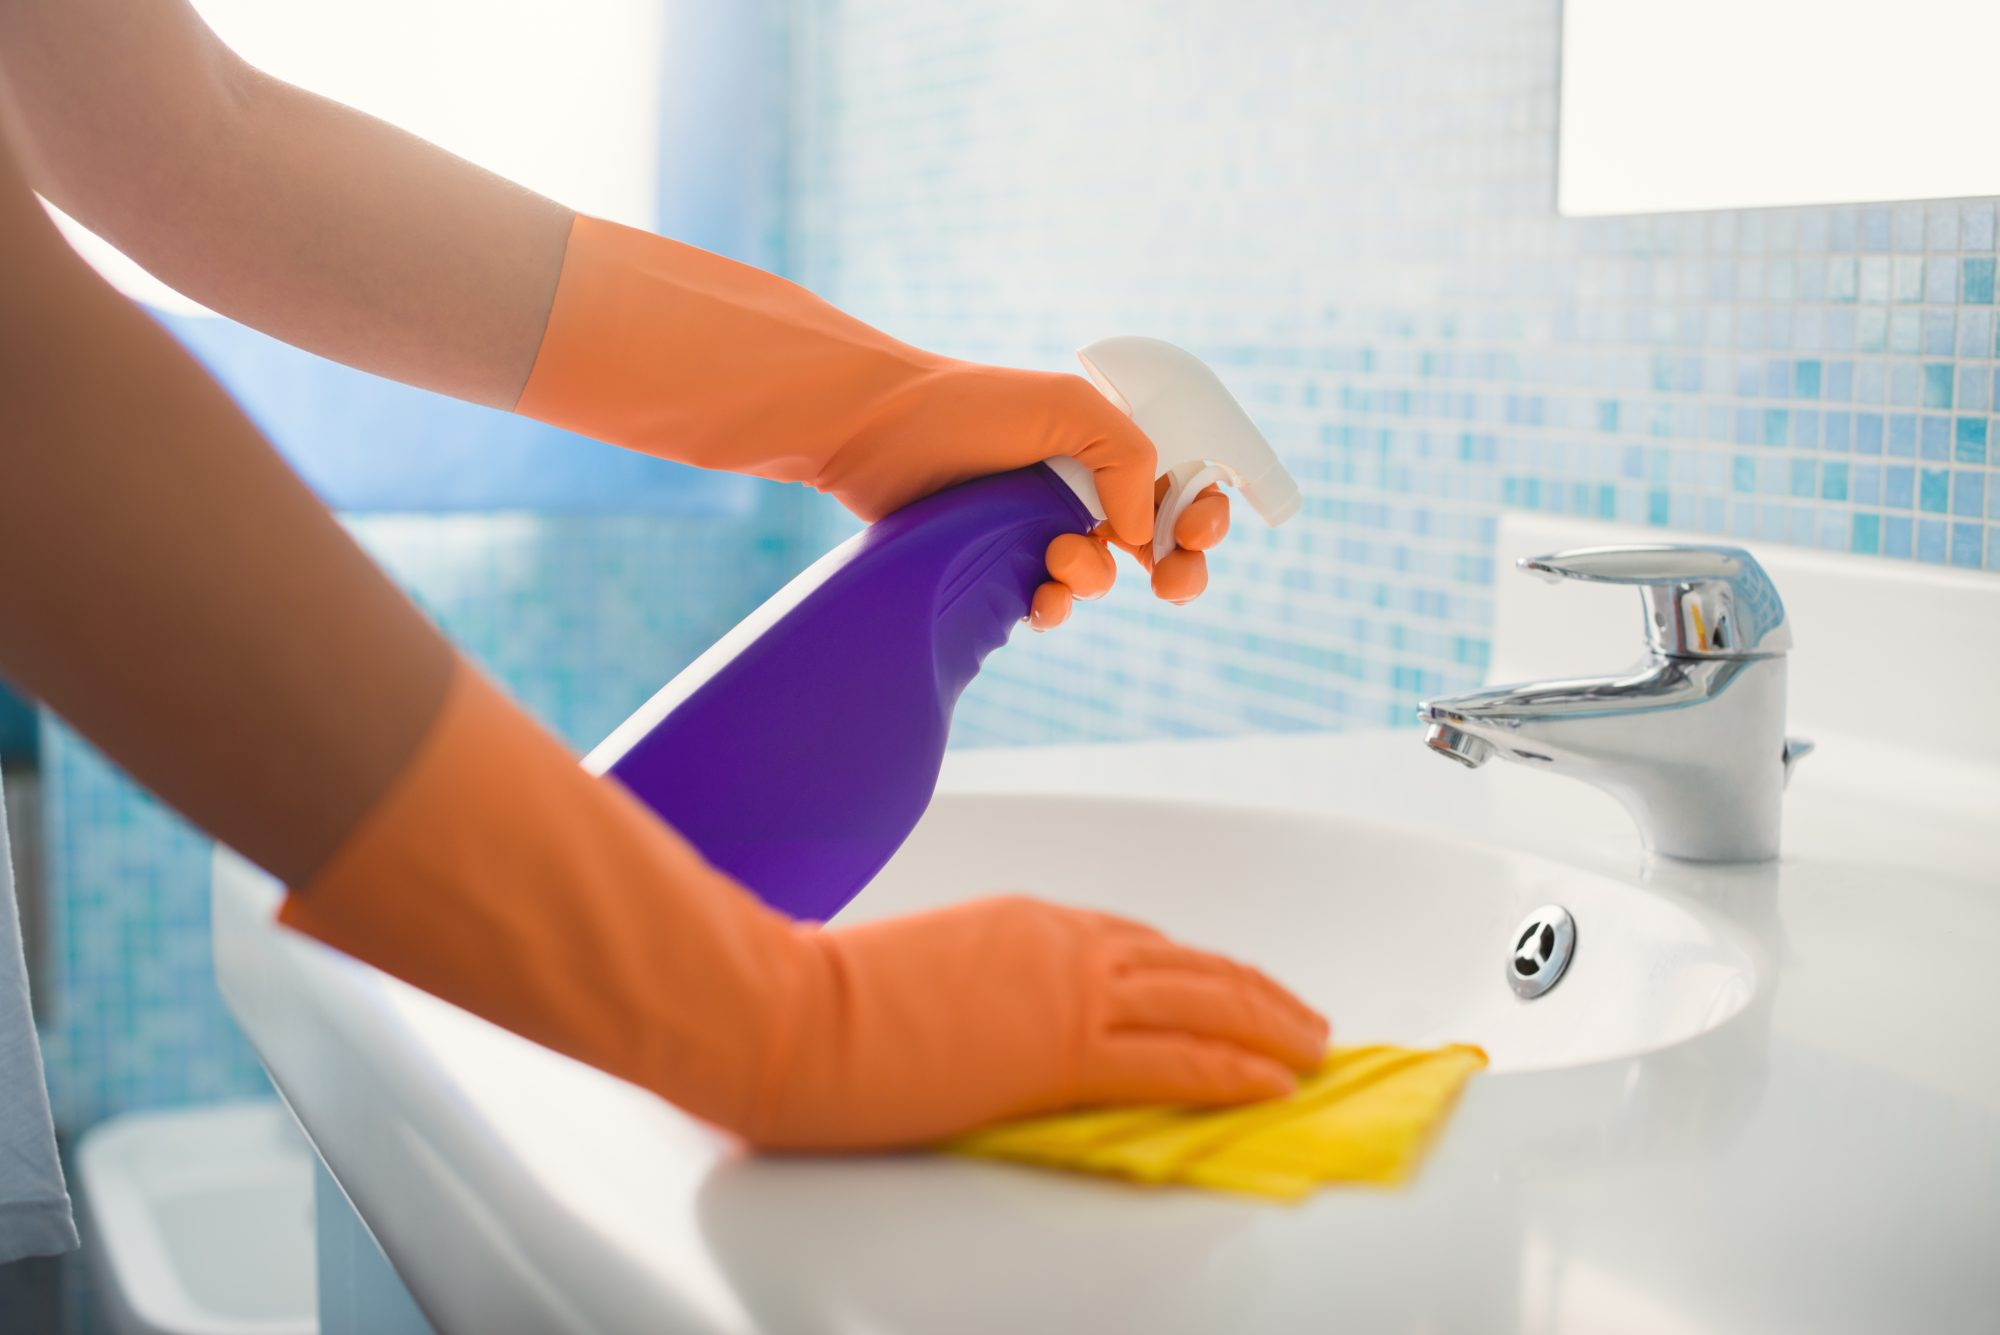 cleaning bathroom sink and counter